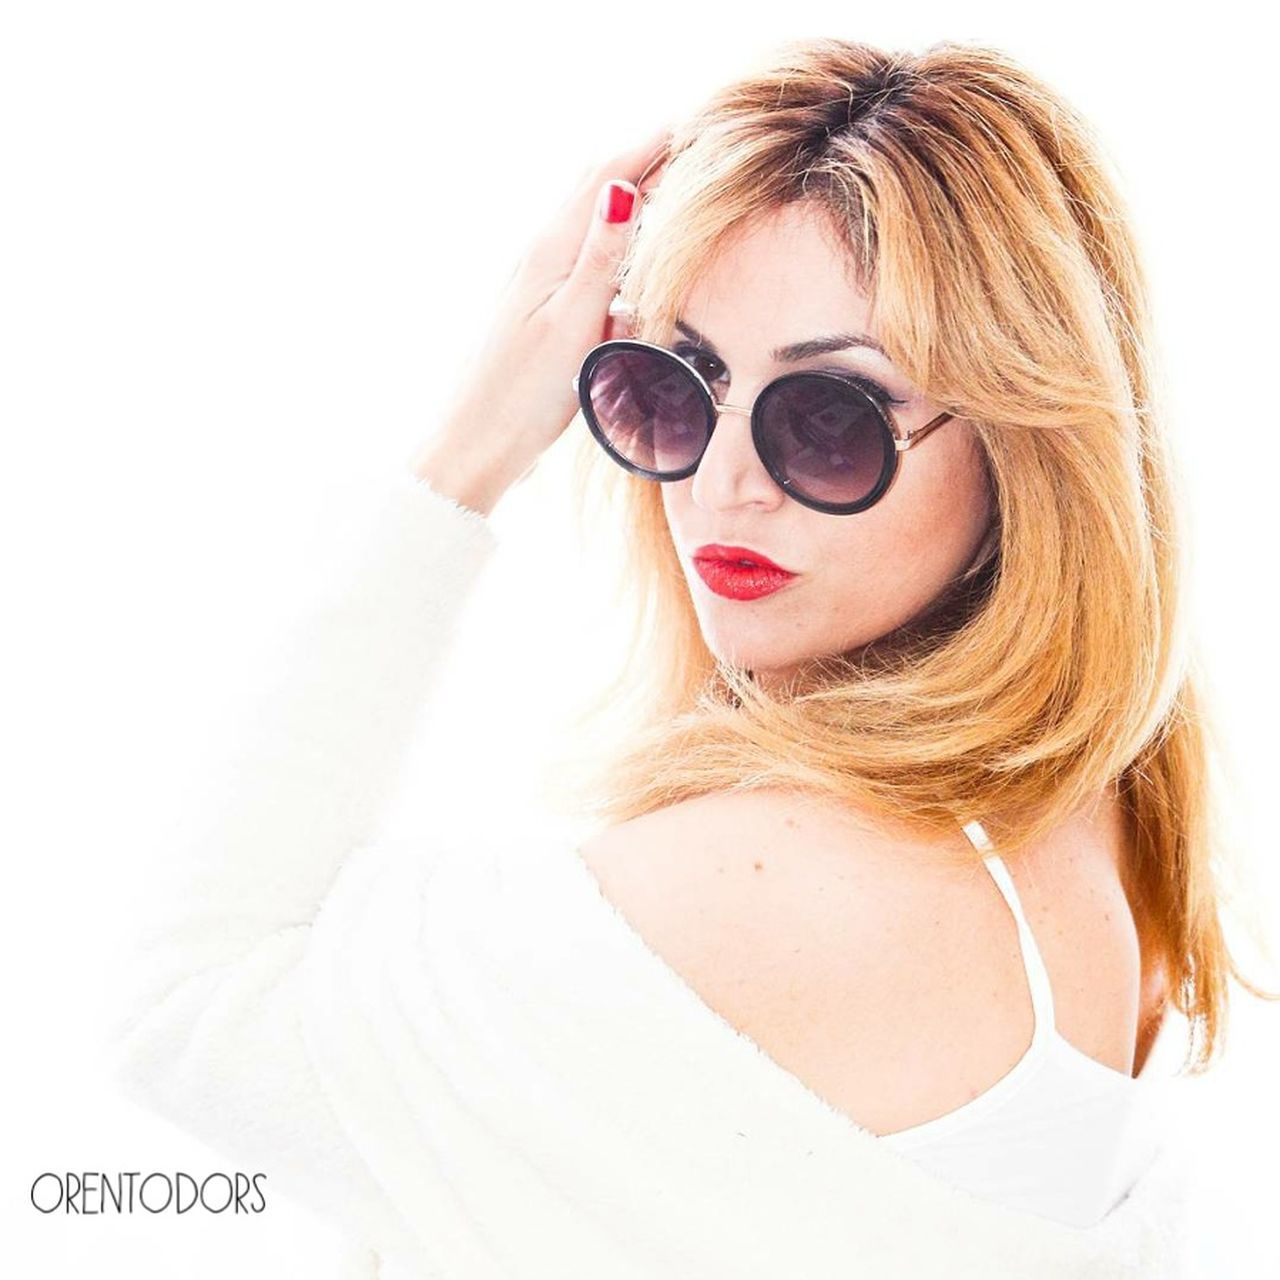 sunglasses, white background, portrait, one person, young adult, looking at camera, blond hair, fashion, young women, headshot, real people, eyeglasses, beautiful woman, fashion model, adult, day, close-up, people, adults only